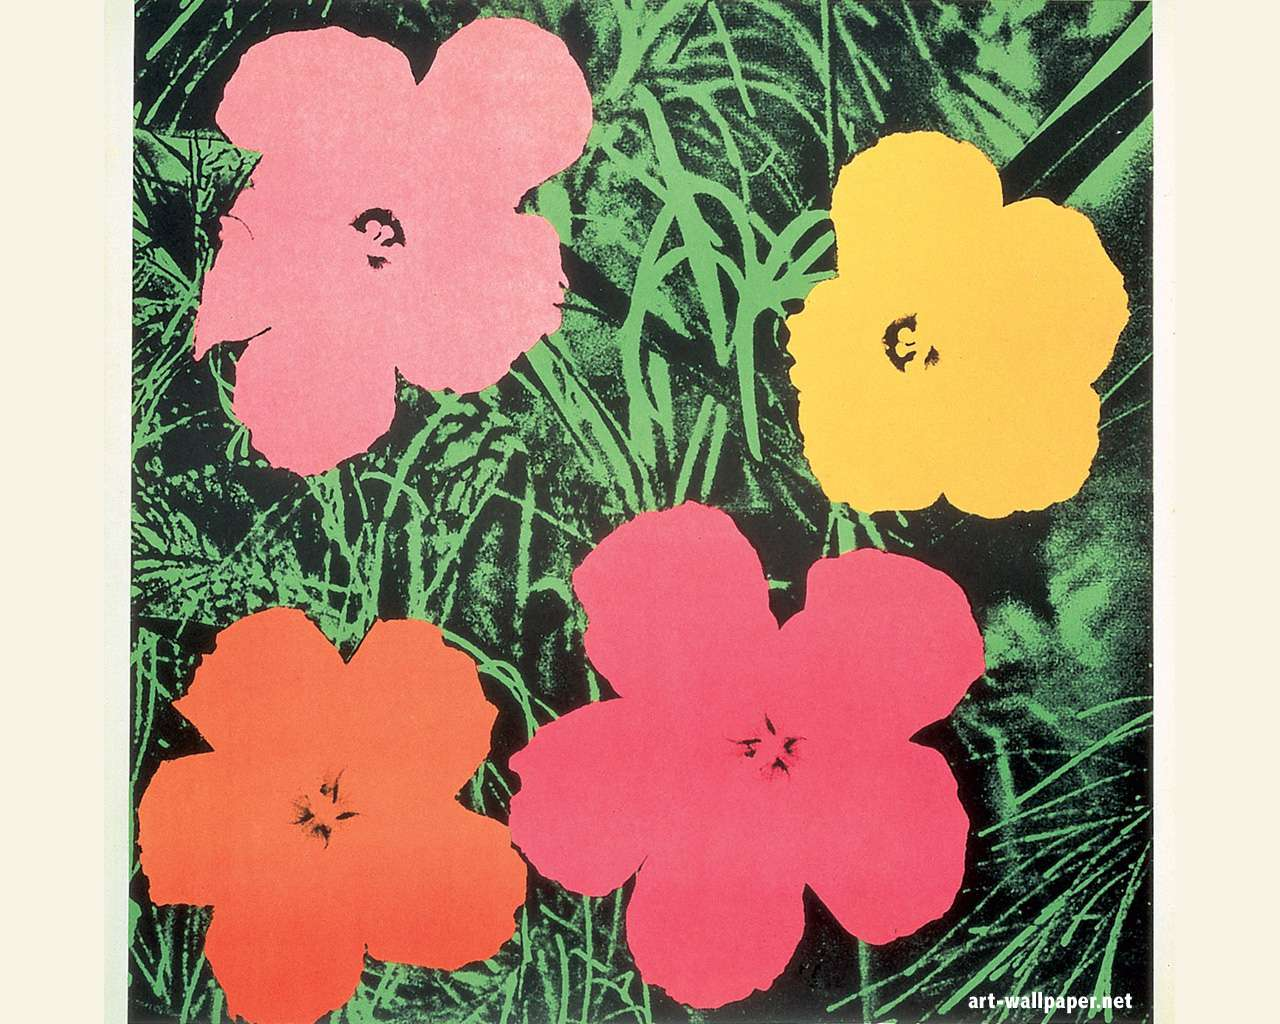 Download Andy Warhol Wallpaper, Paintings, Painting Art Wallpapers